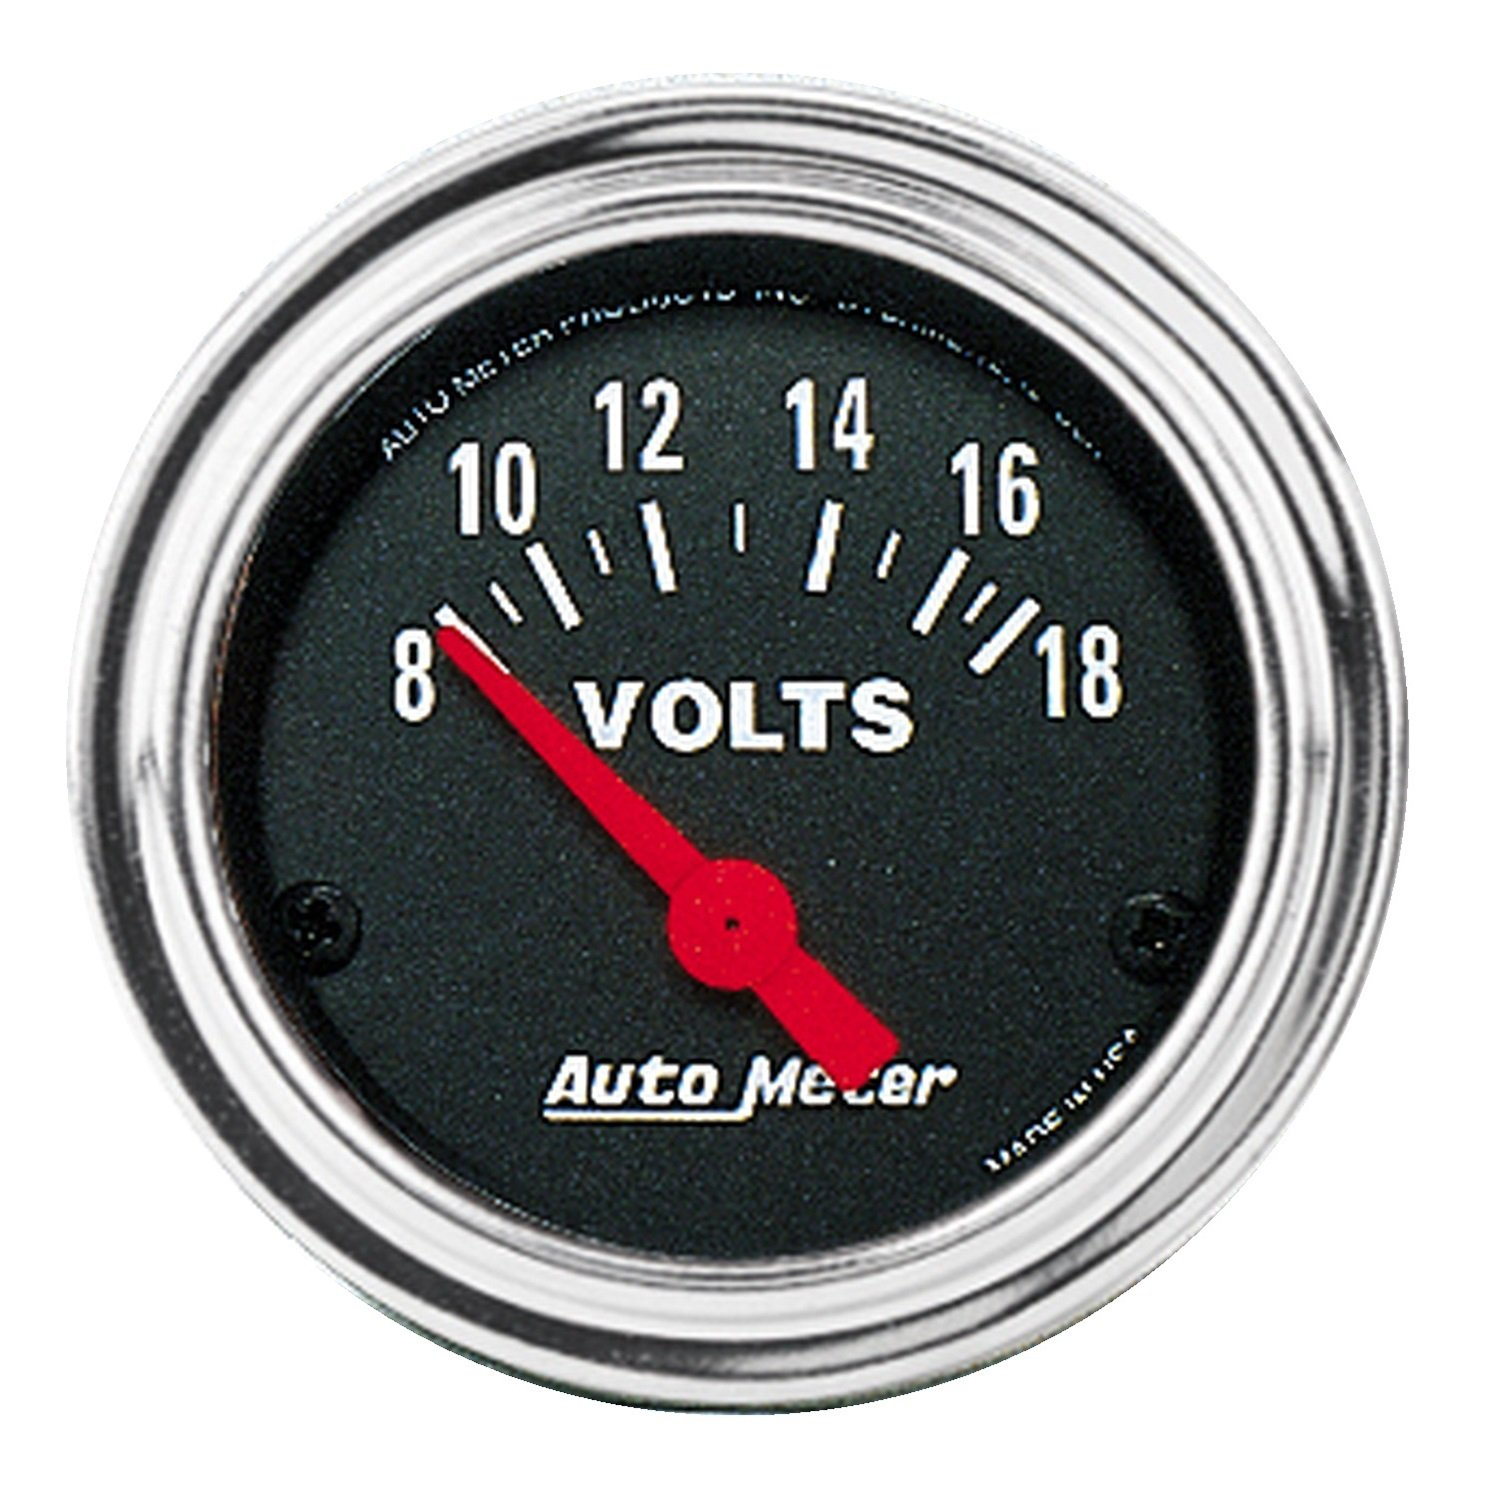 Auto Meter 2592 Traditional Chrome Electric Voltmeter Gauge by Auto Meter